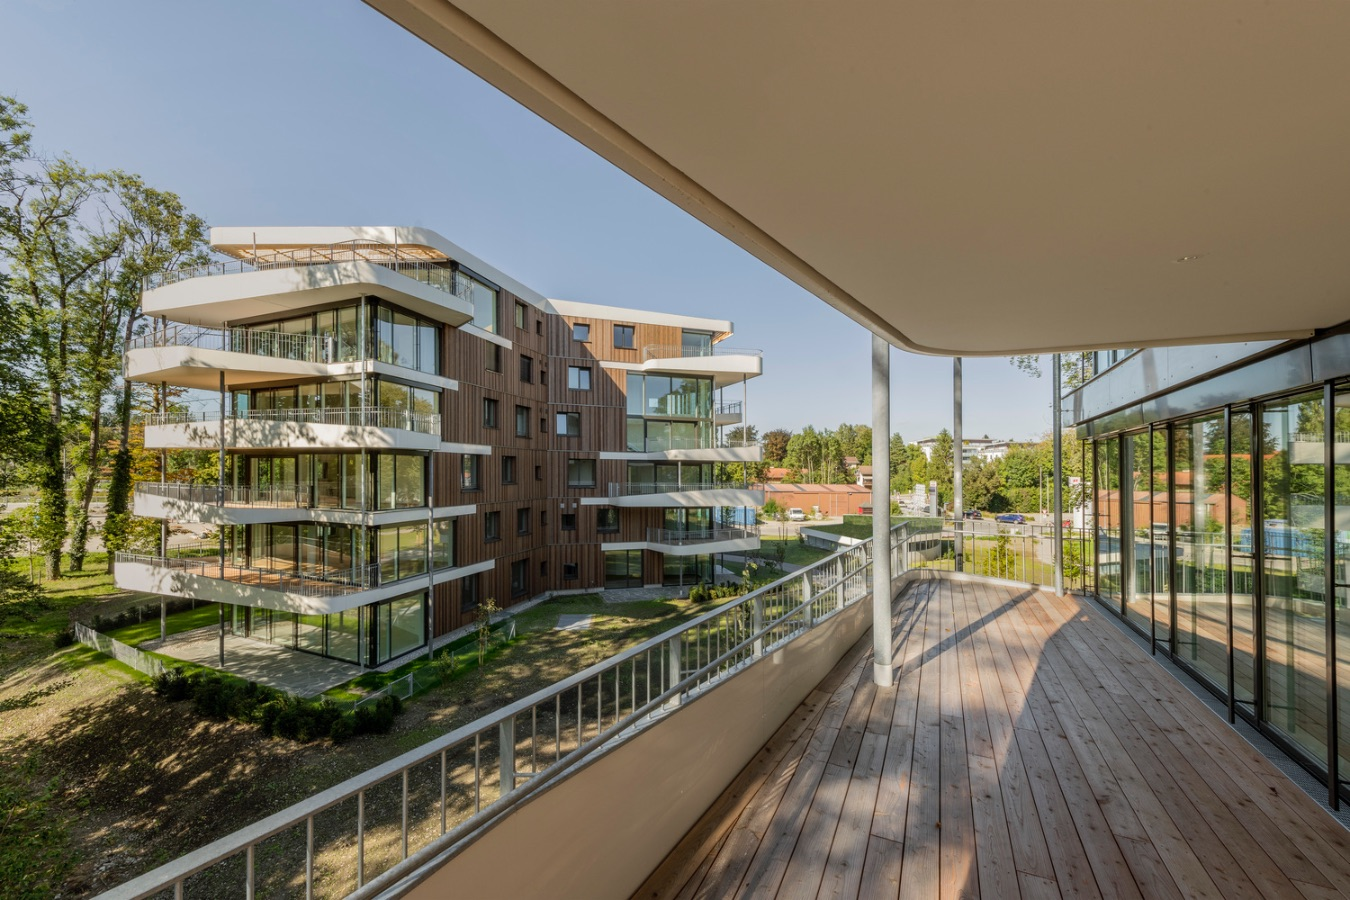 12_Living in the Spinnereipark_Behnisch Architekten_Inspirationist